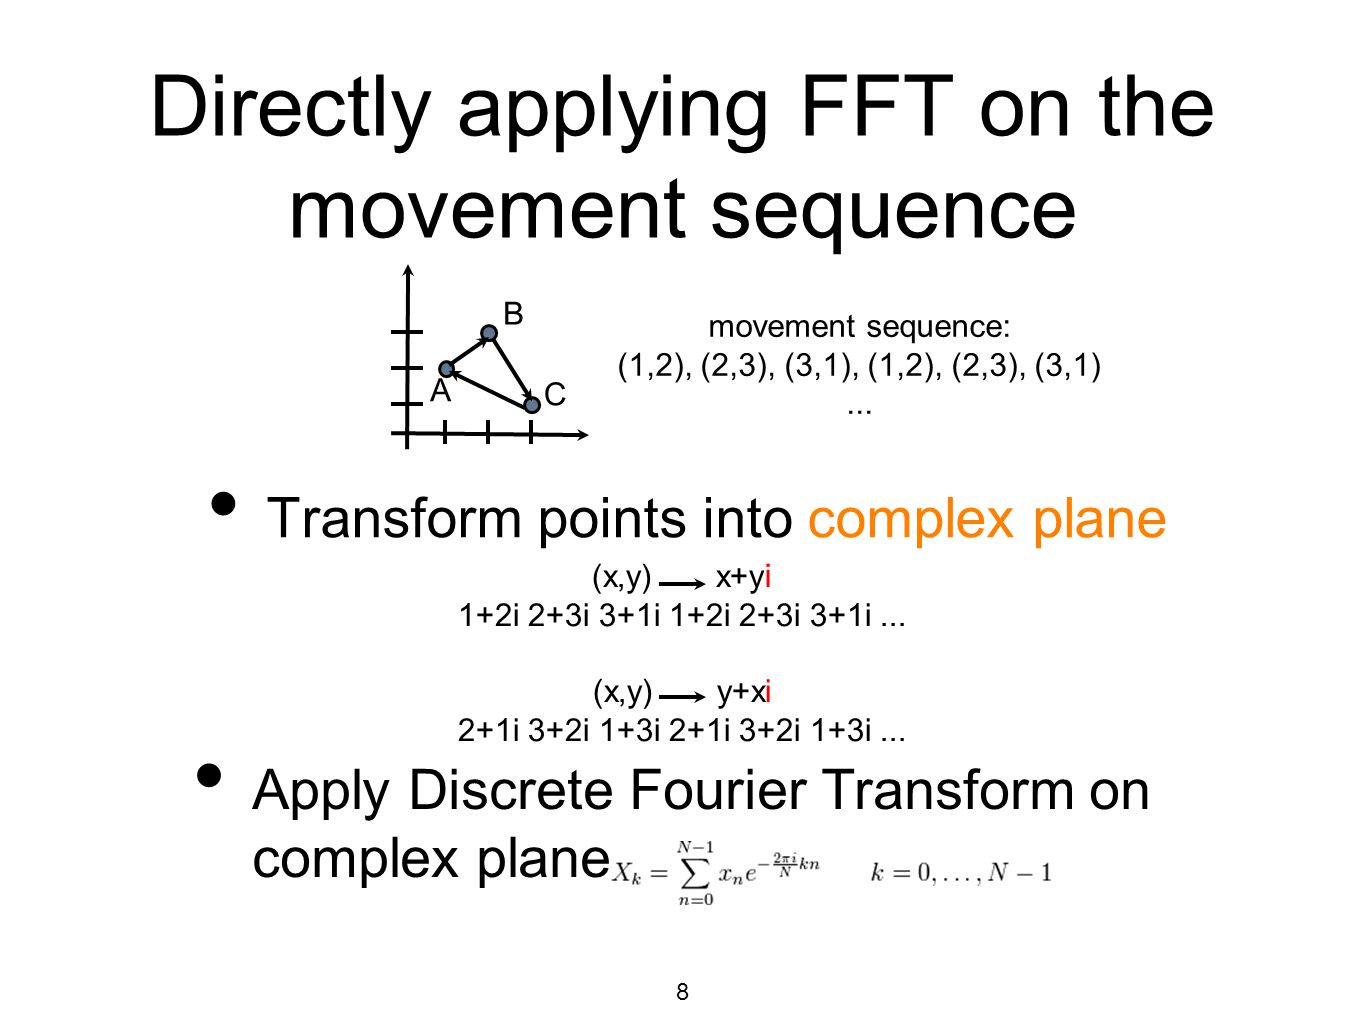 Directly applying FFT on the movement sequence